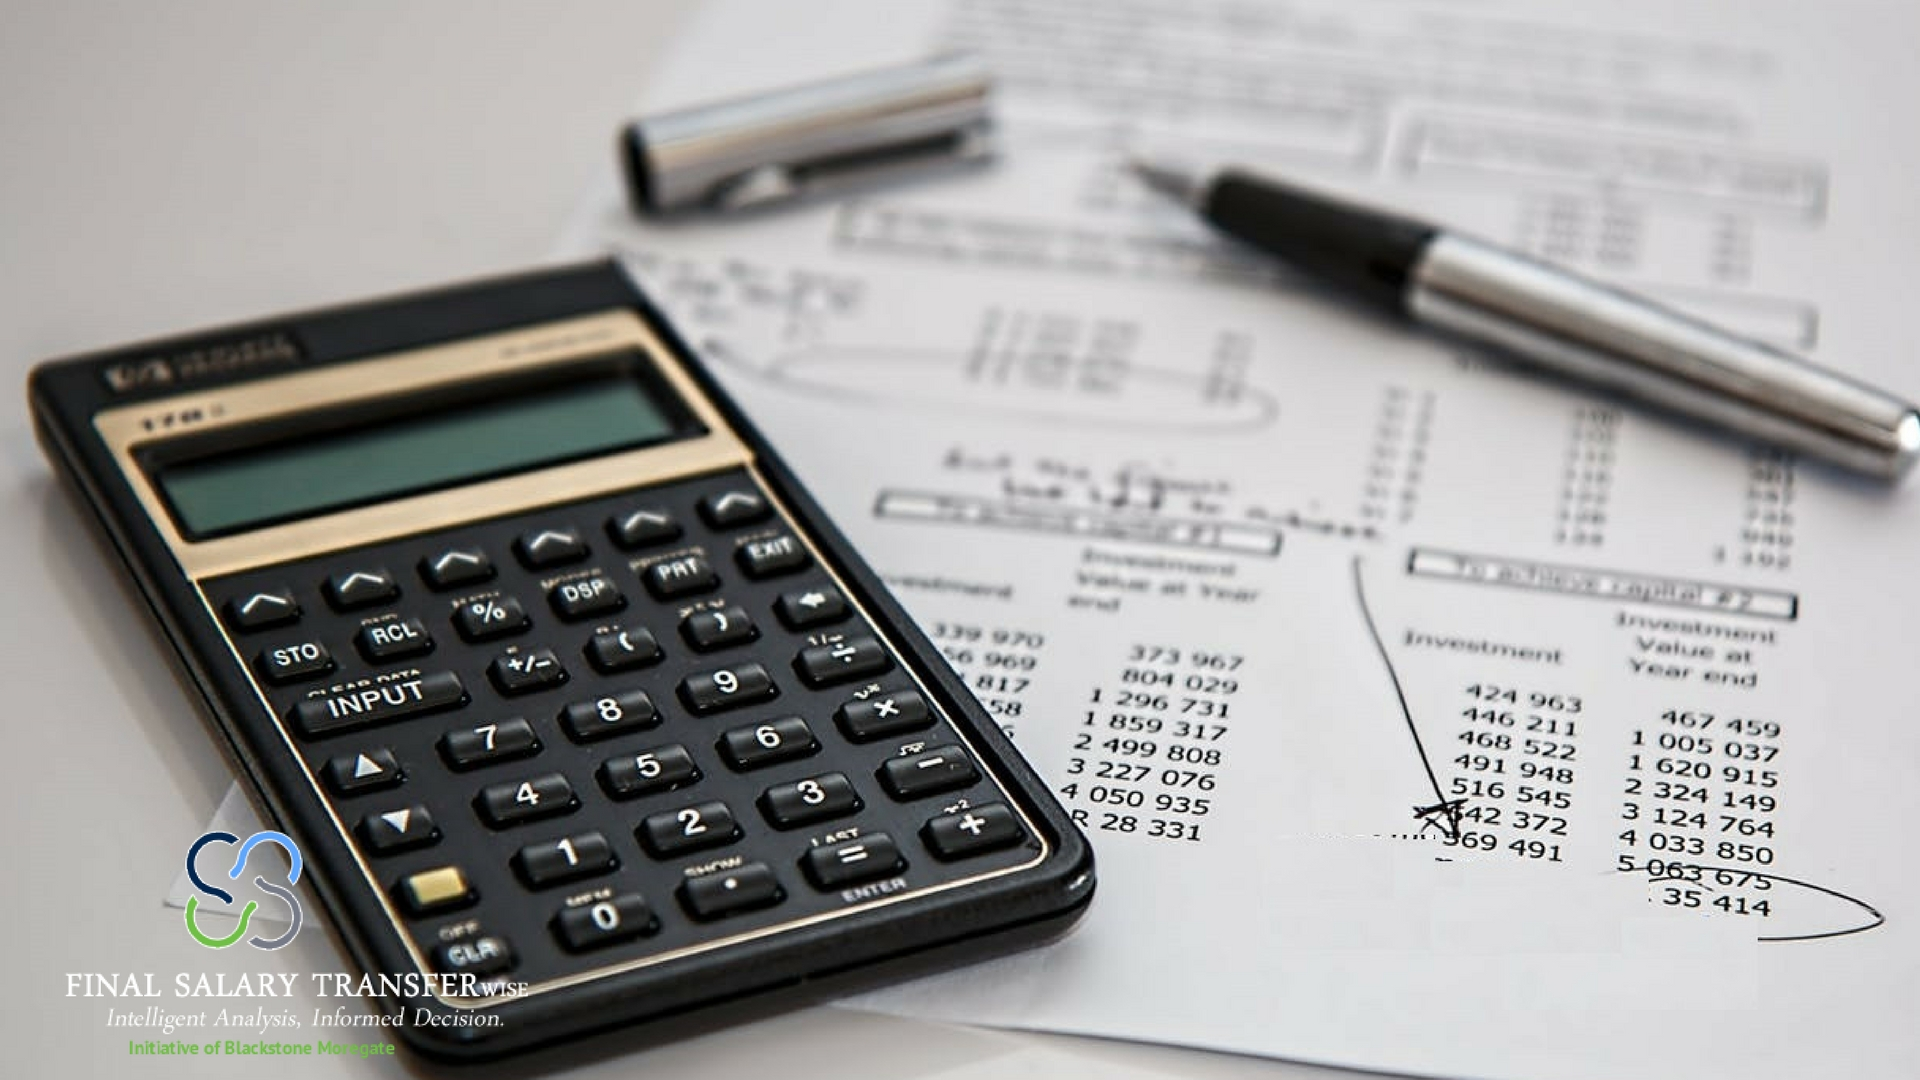 inal salary transfers are calculated